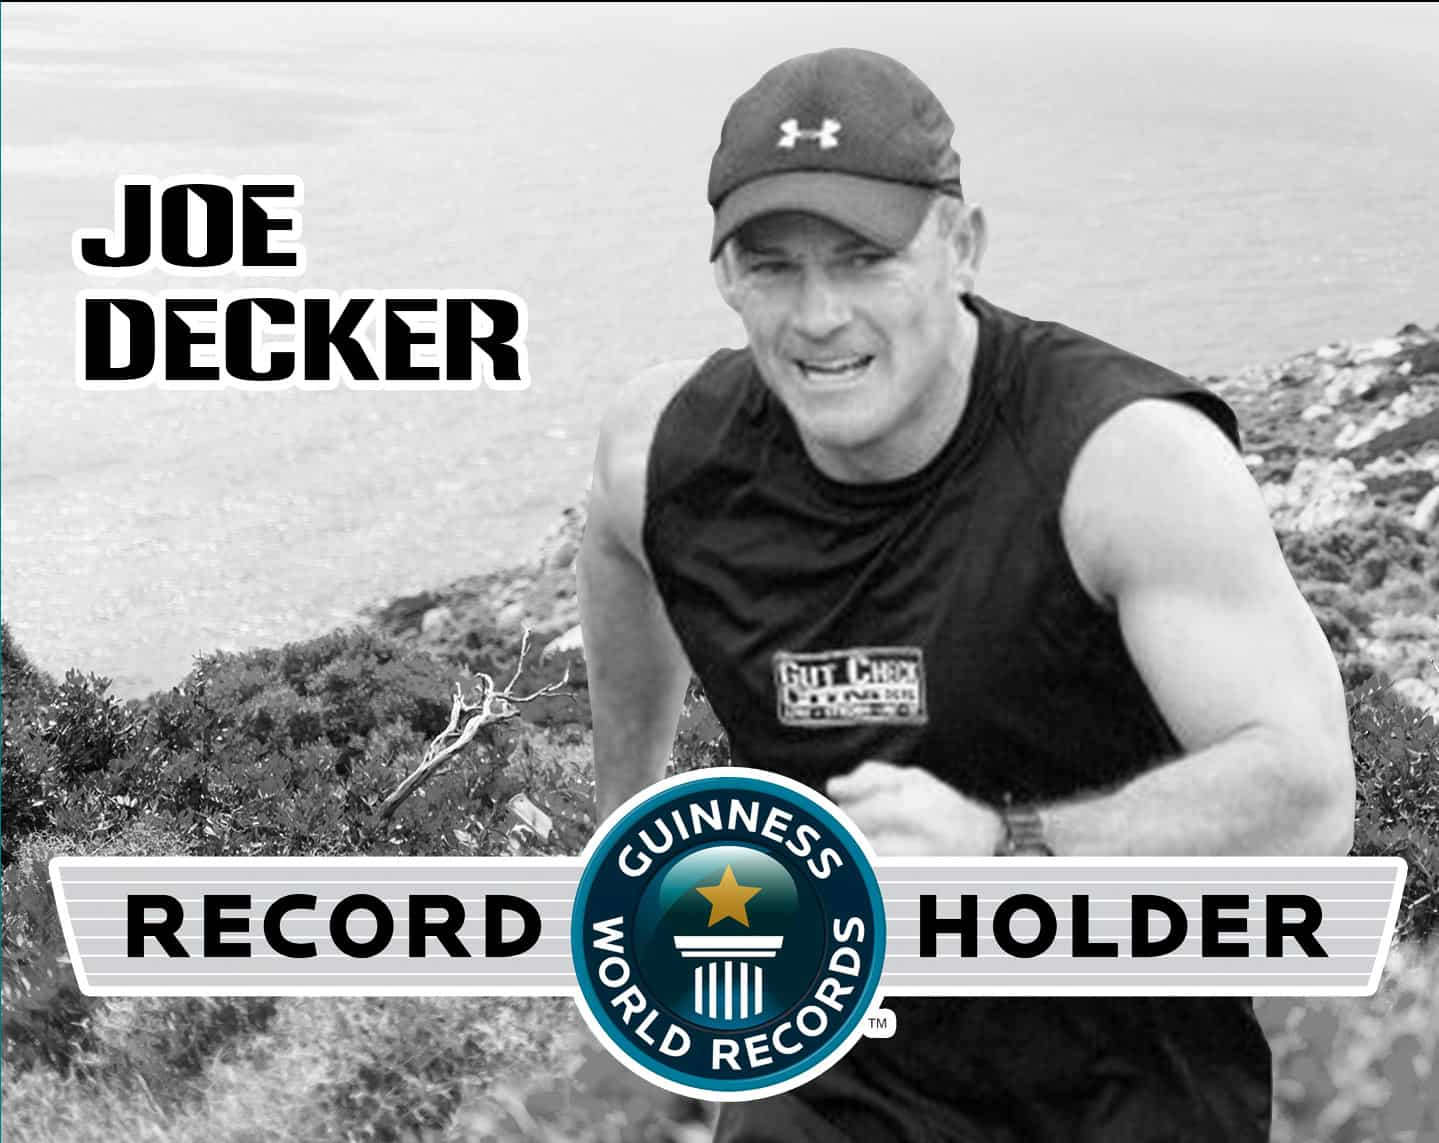 Joe-Decker-World-Record-Holder-2